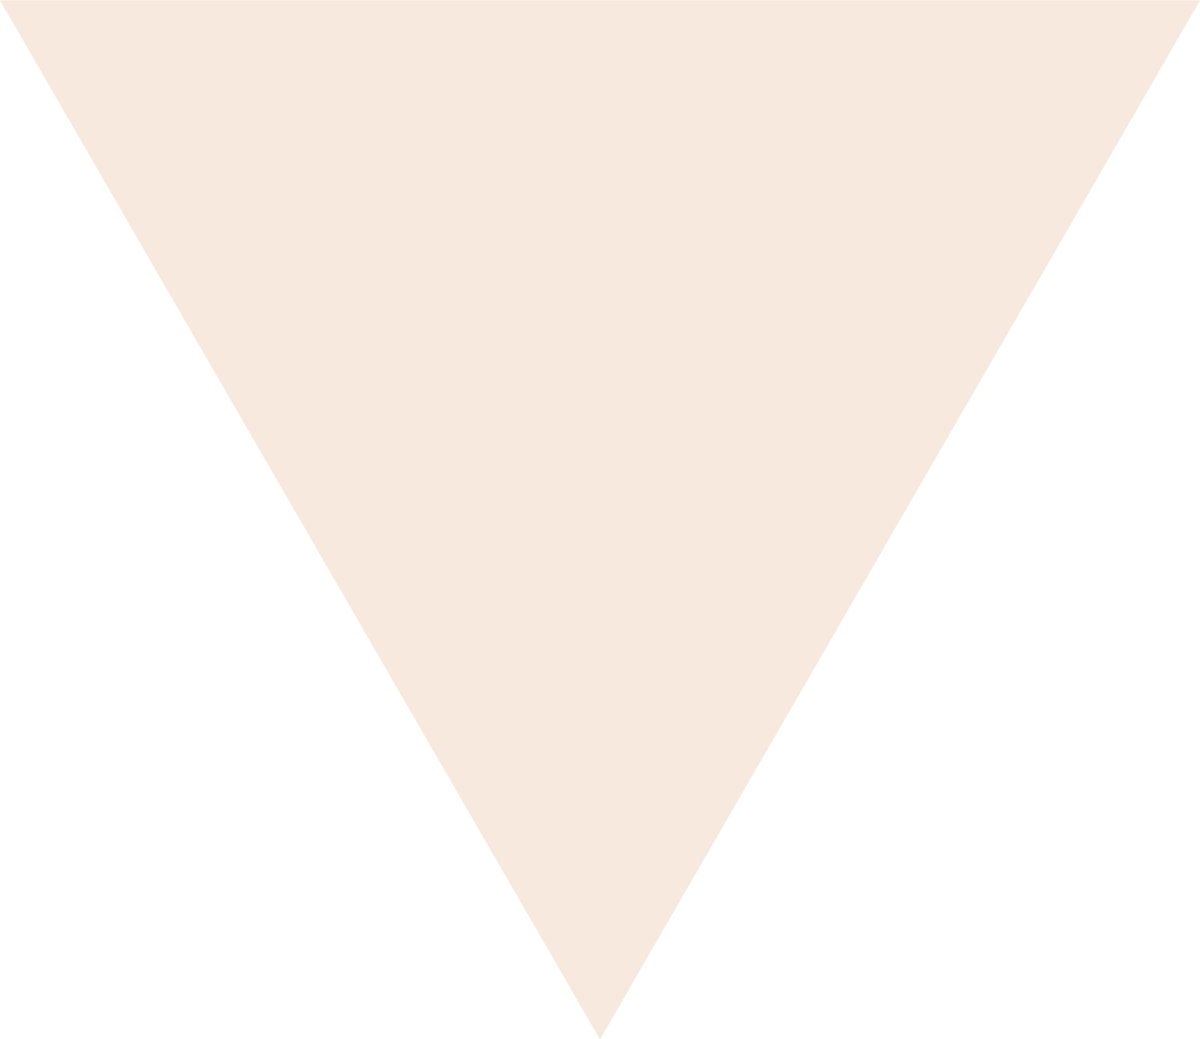 Upside Down Triangle